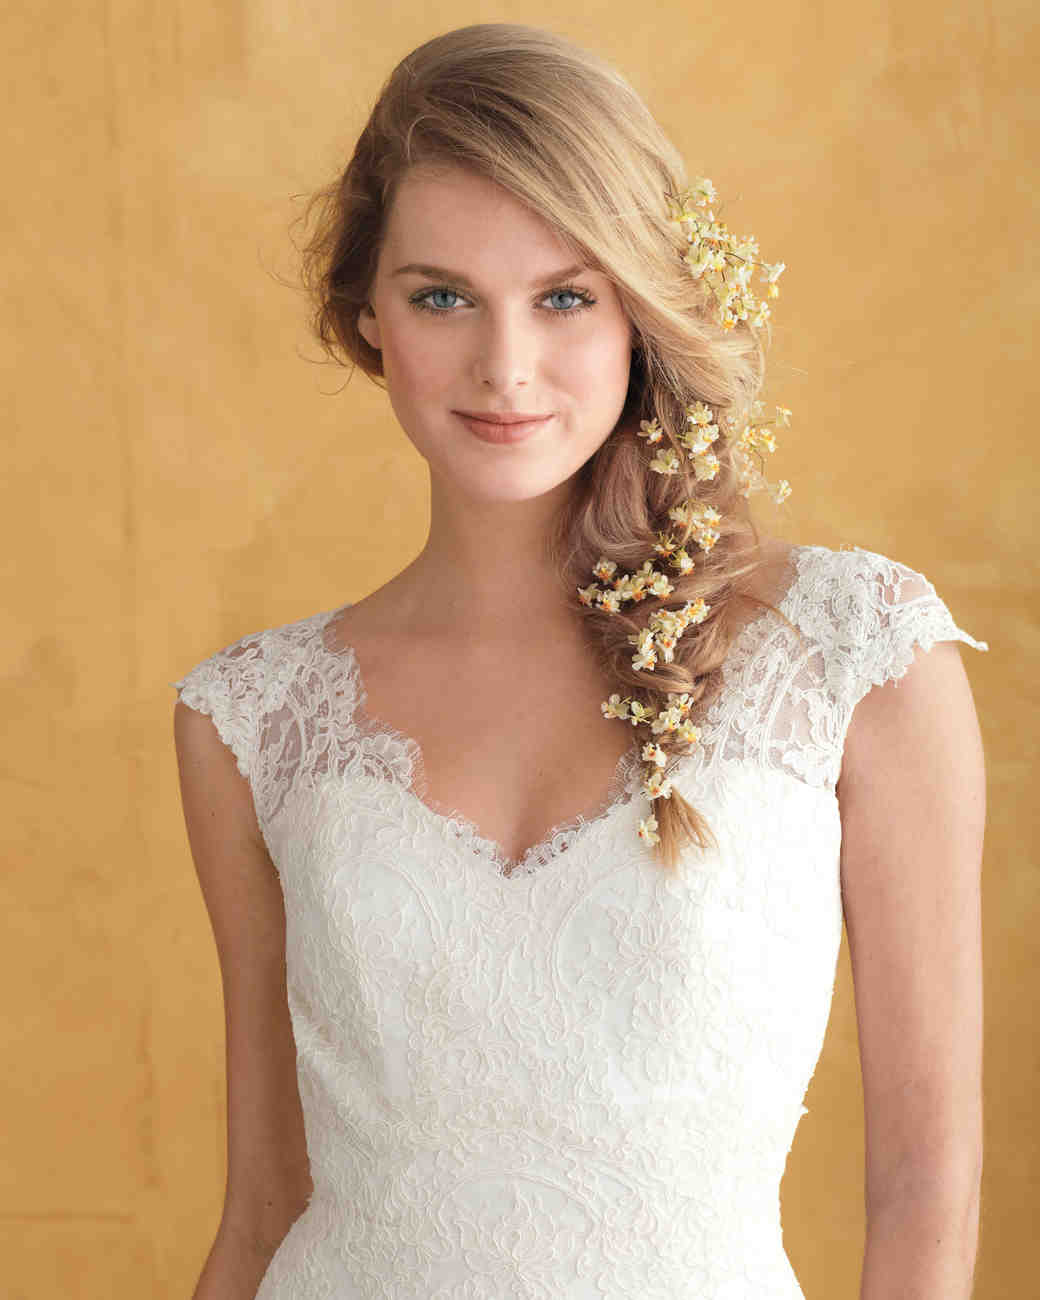 braid-flowers-model-026-mwd109799.jpg